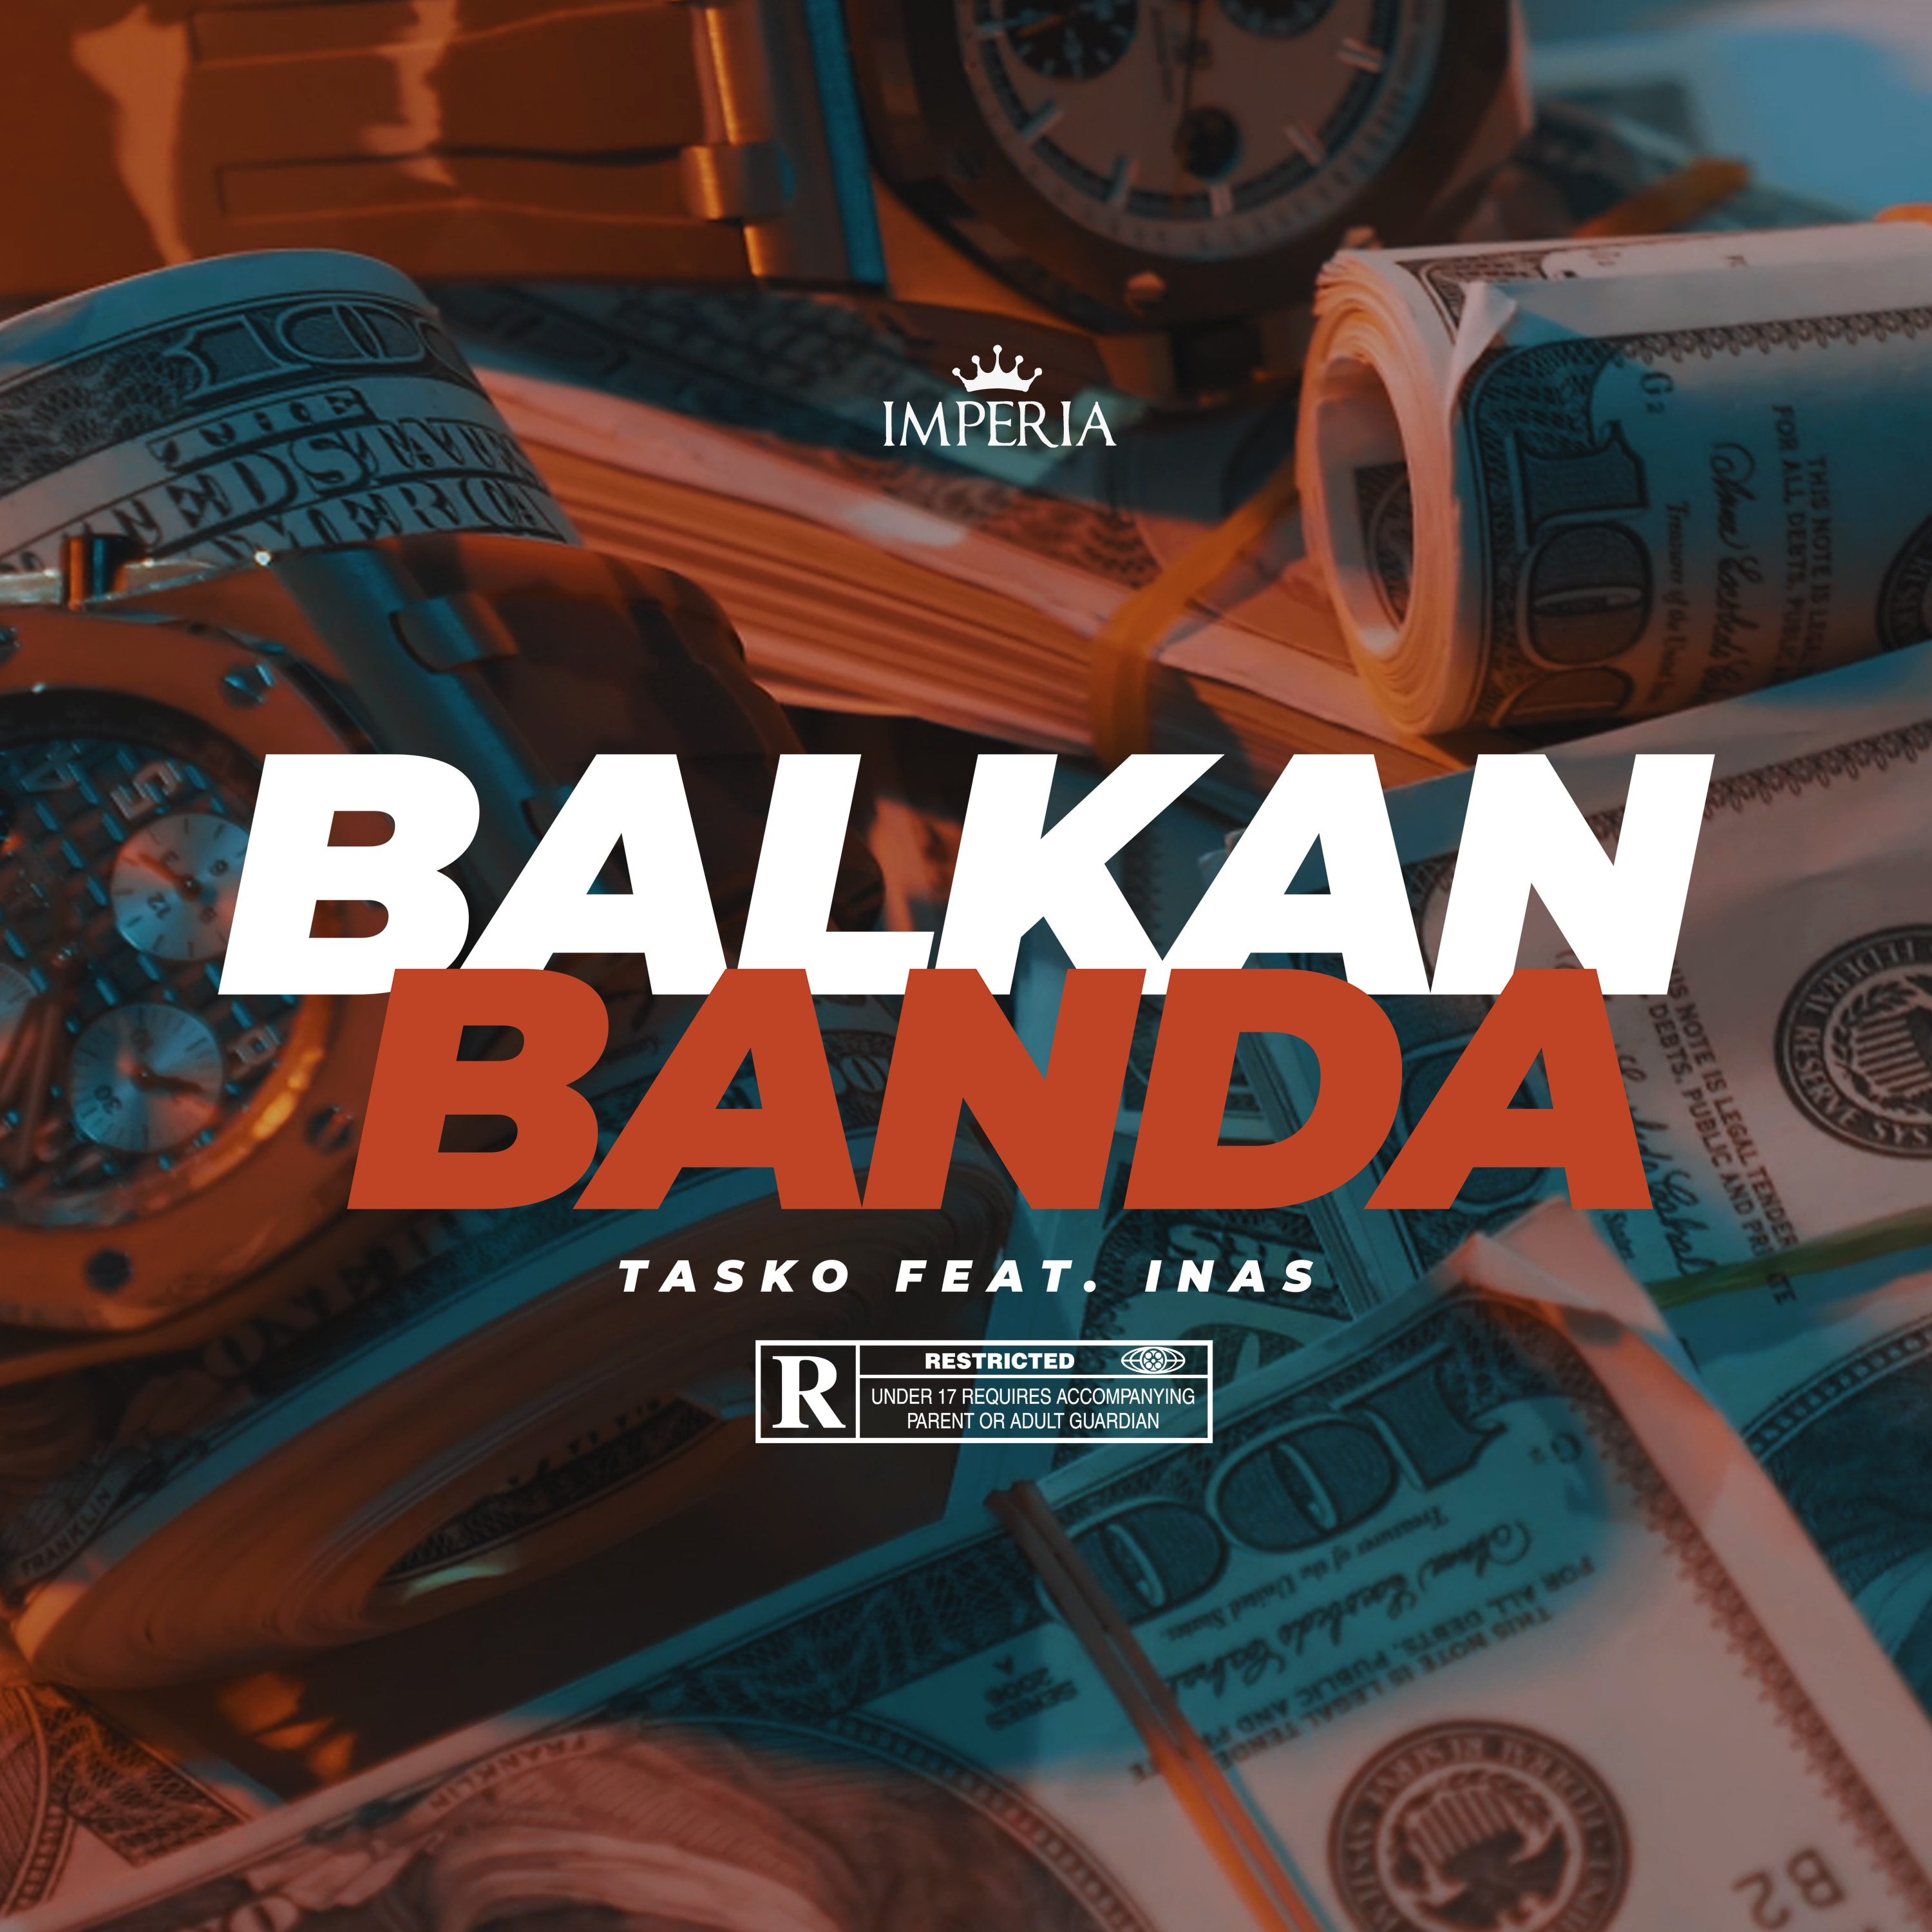 Tasko feat. INAS - Balkan Banda - Listen on Spotify, Deezer, YouTube, Google Play Music and Buy on Amazon, iTunes Google Play | EMDC Network